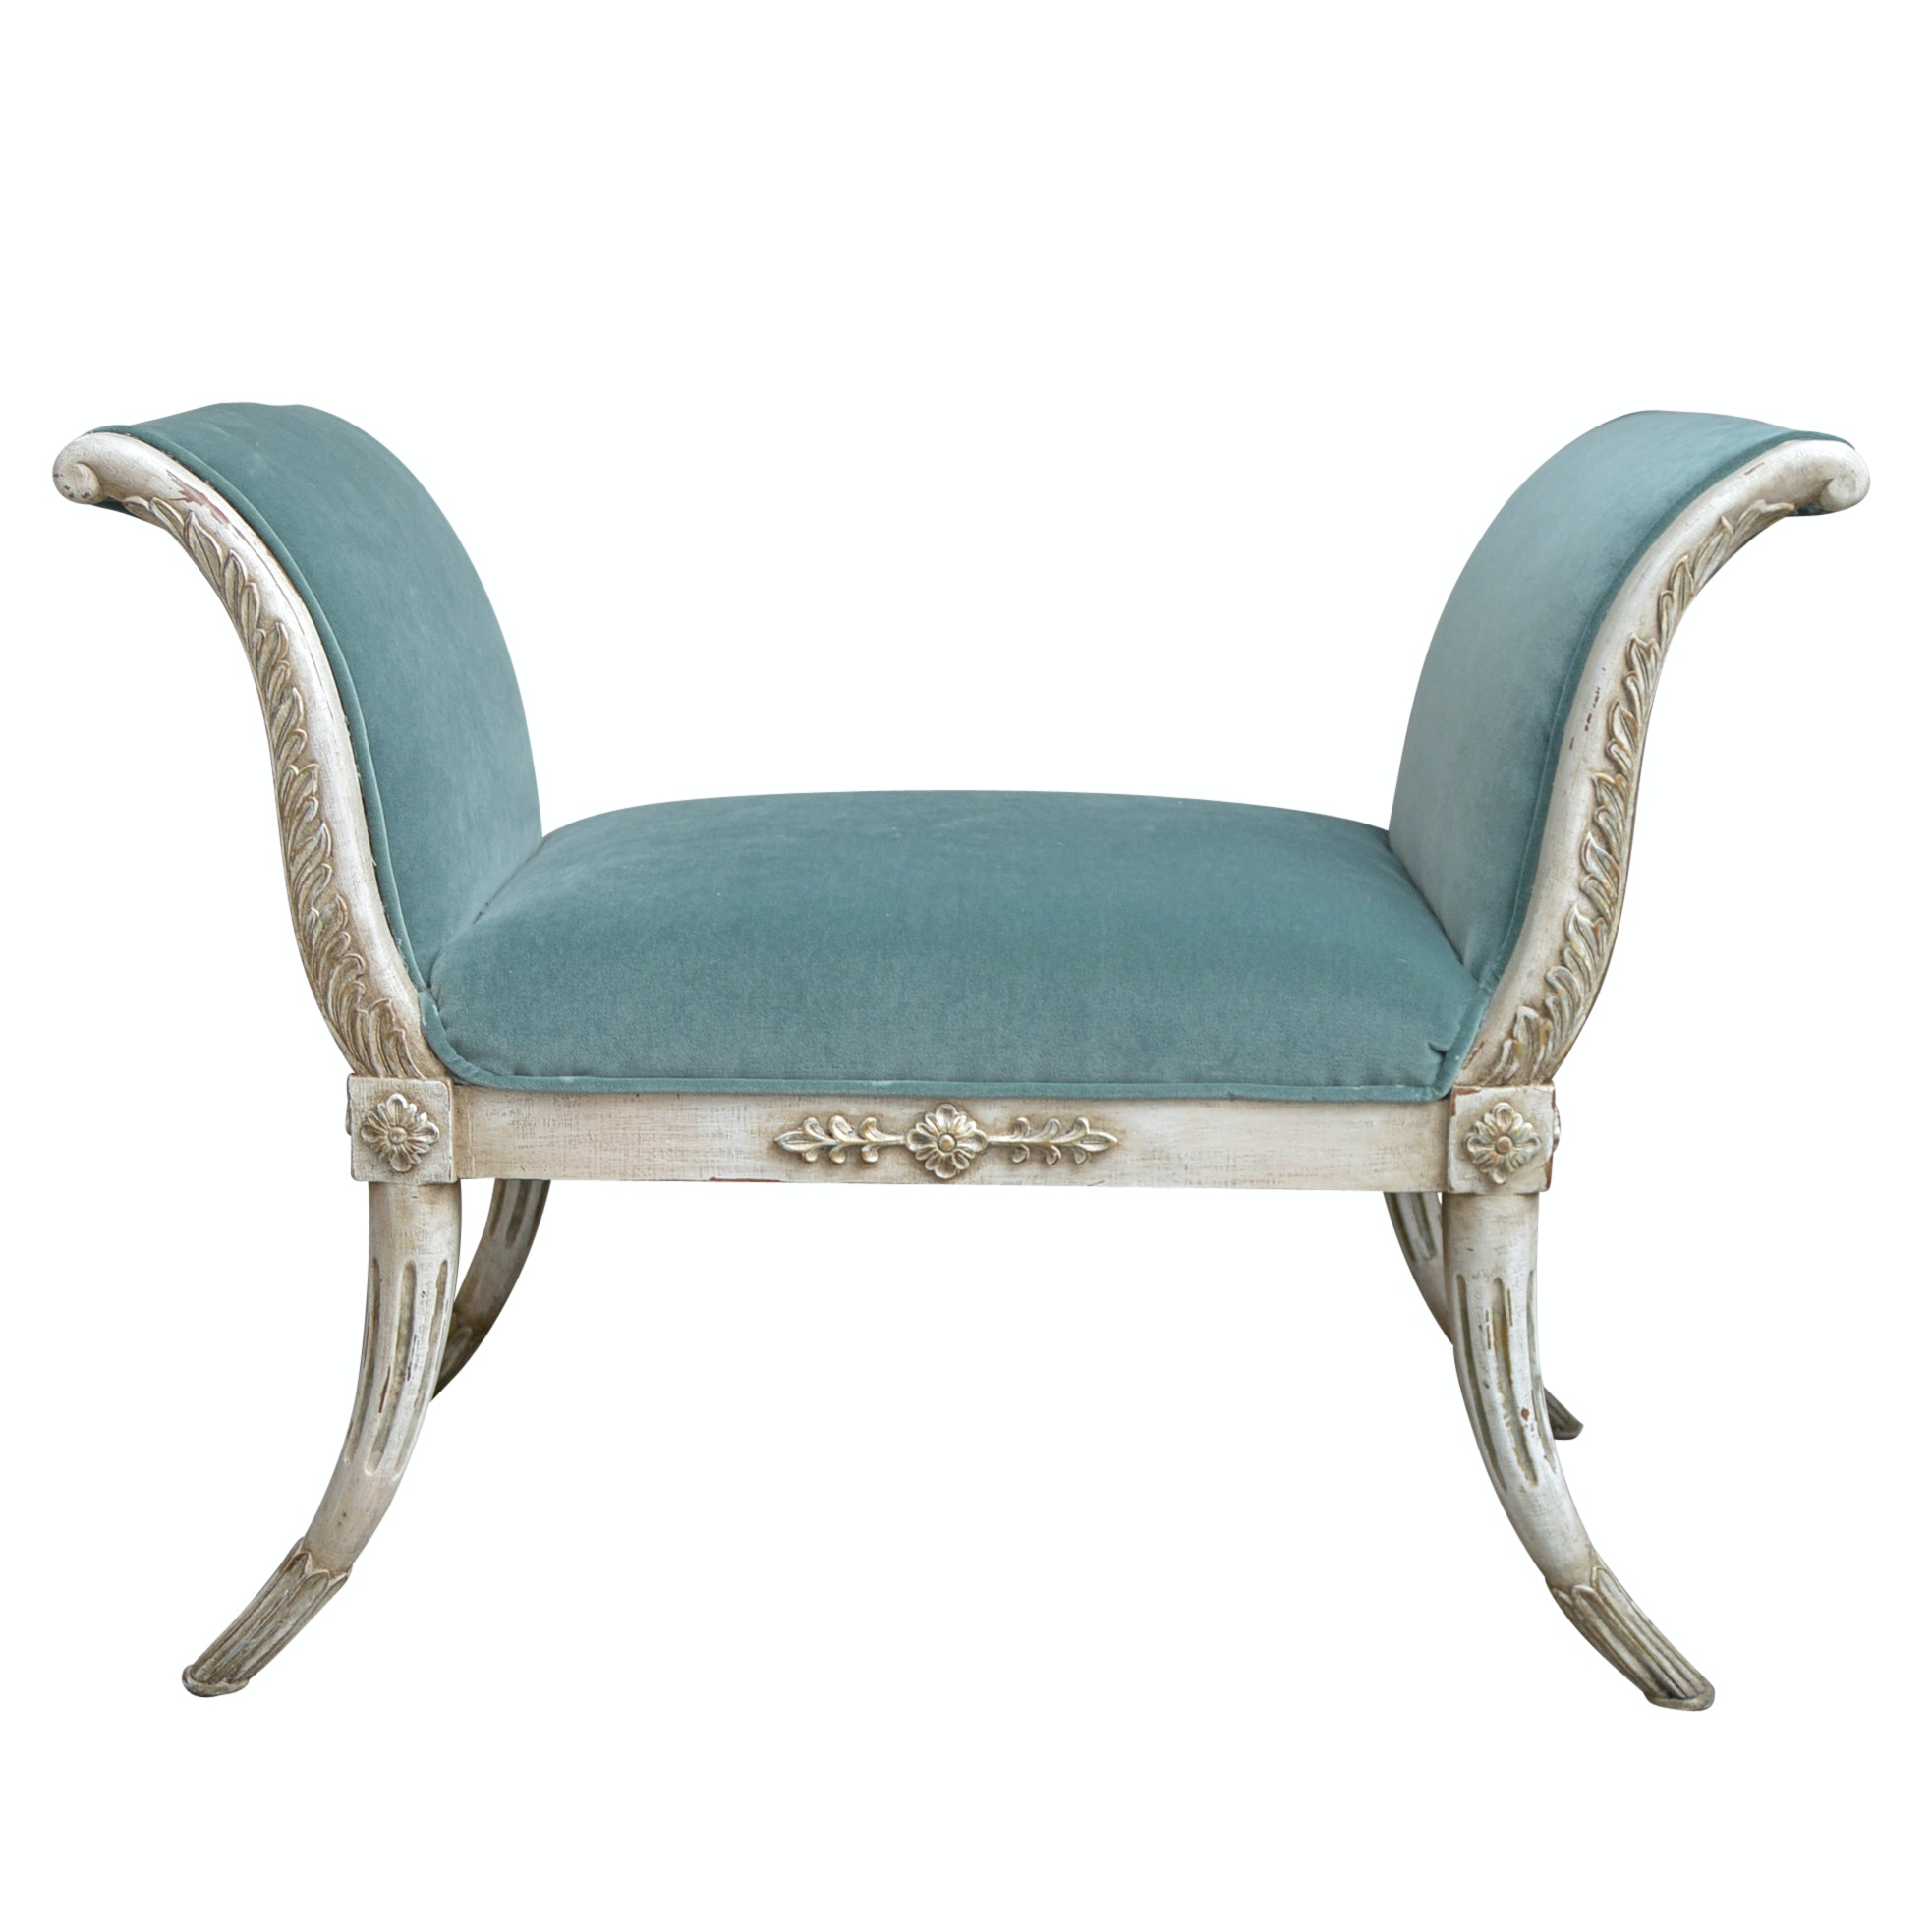 Neoclassic Style Curule Bench by John-Richard